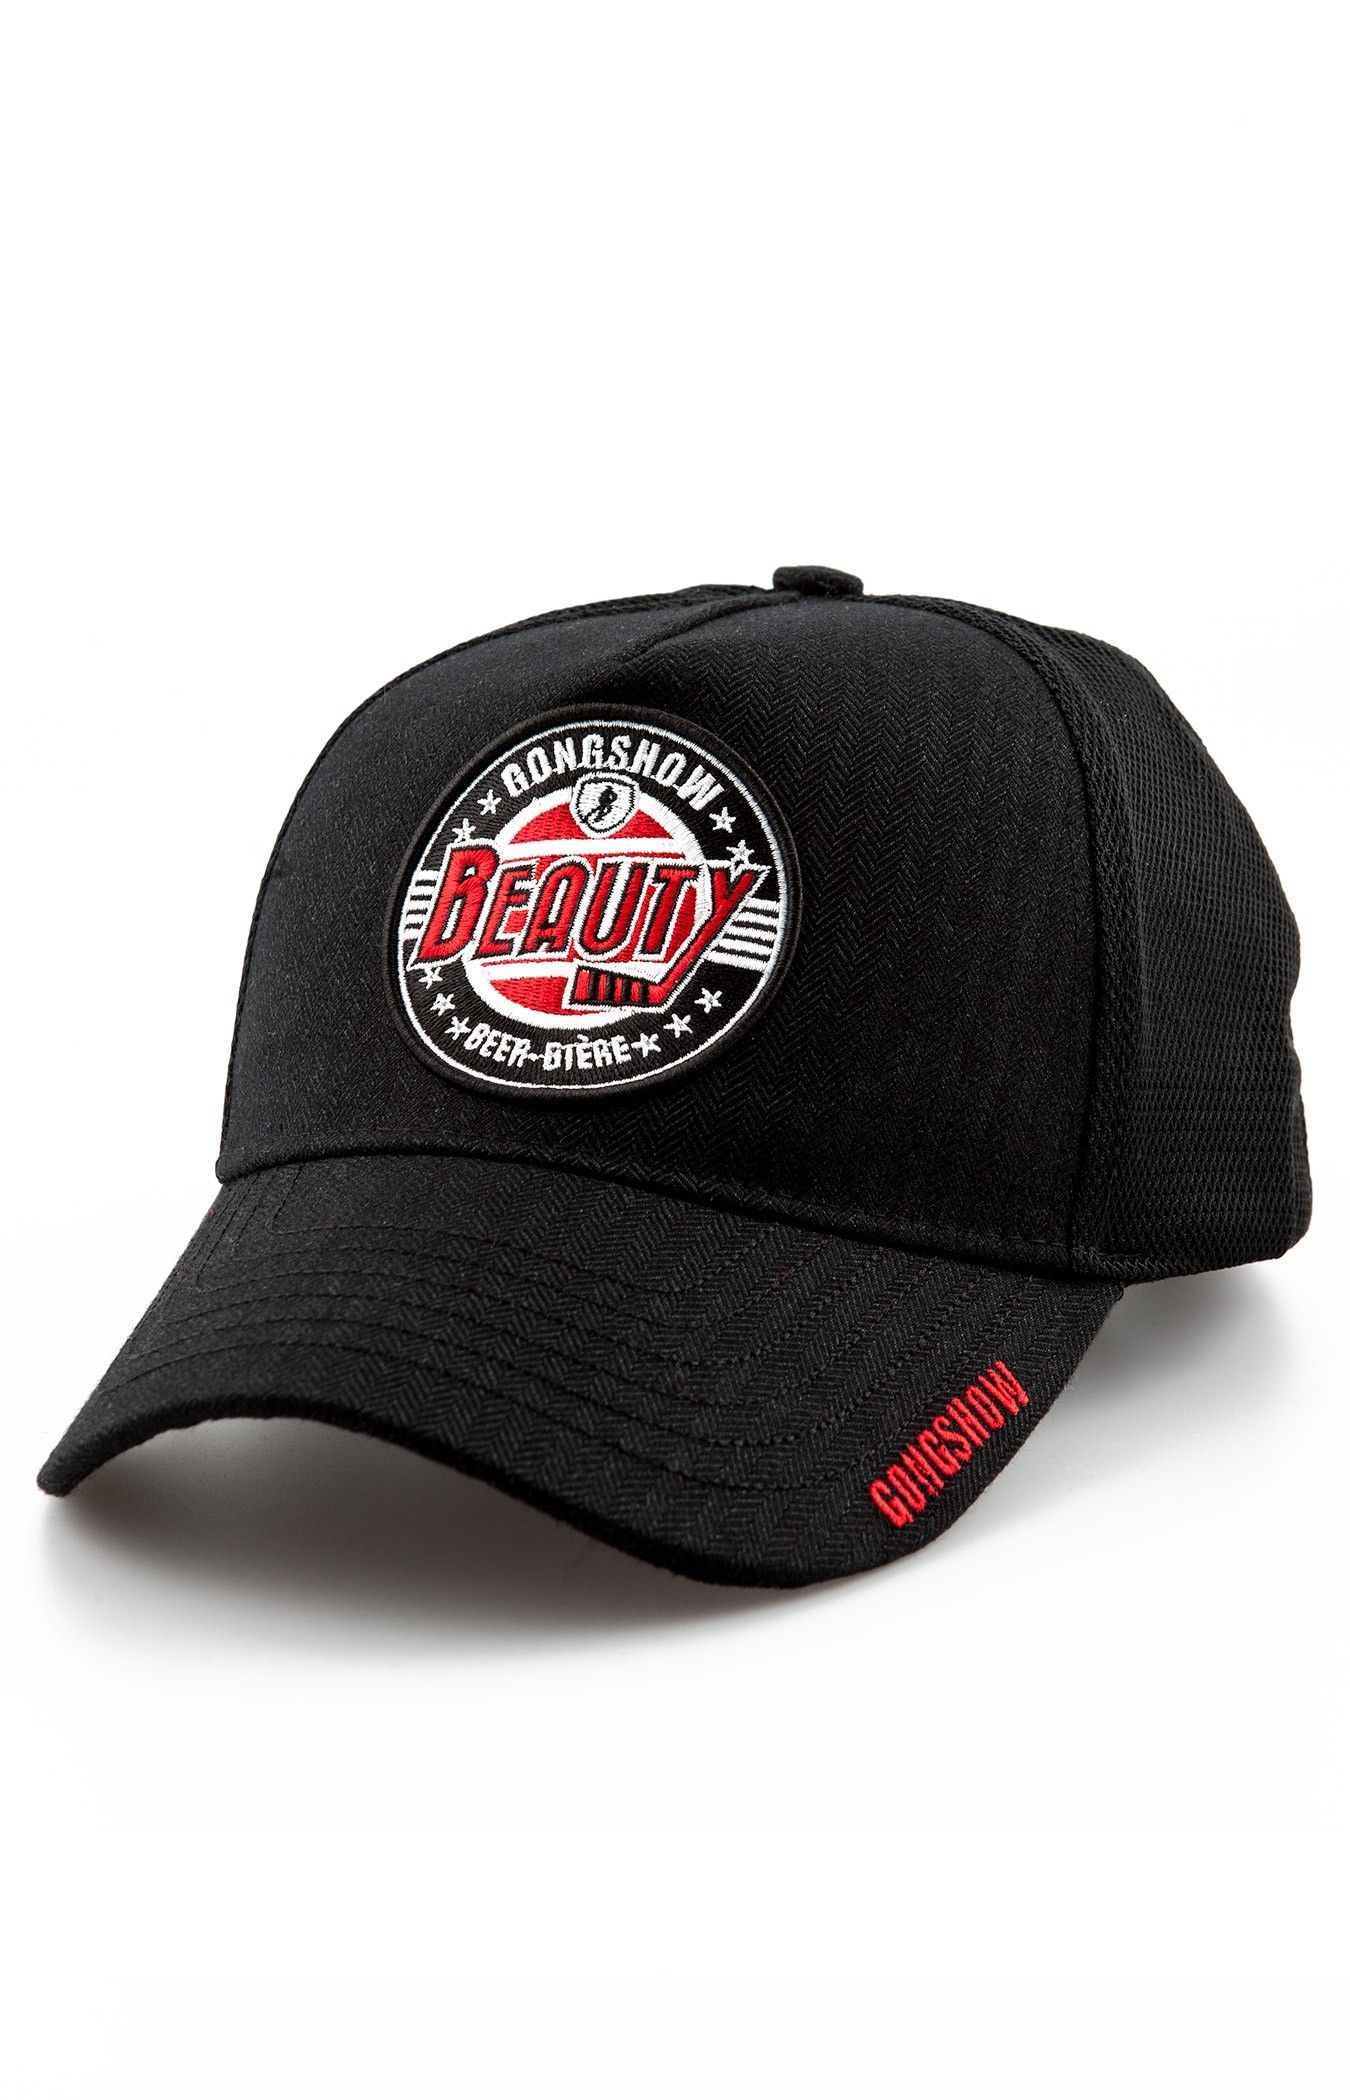 Beauty Beer Buckey Gongshow Gear Lifestyle Hockey